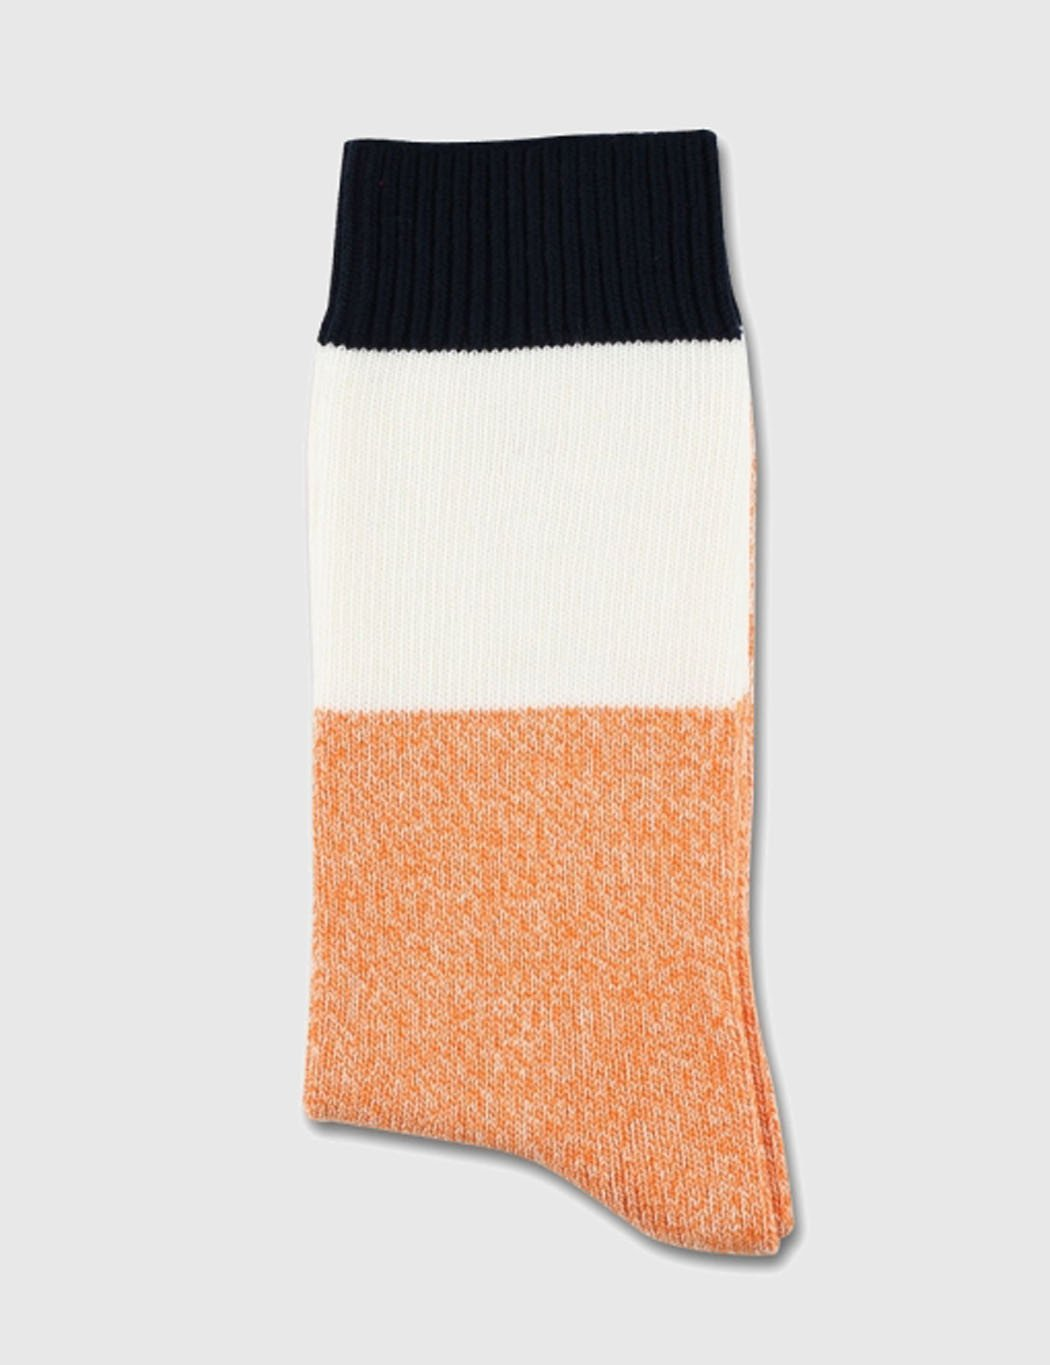 Democratique x Pointer Relax Block Socks - Navy/White/Orange